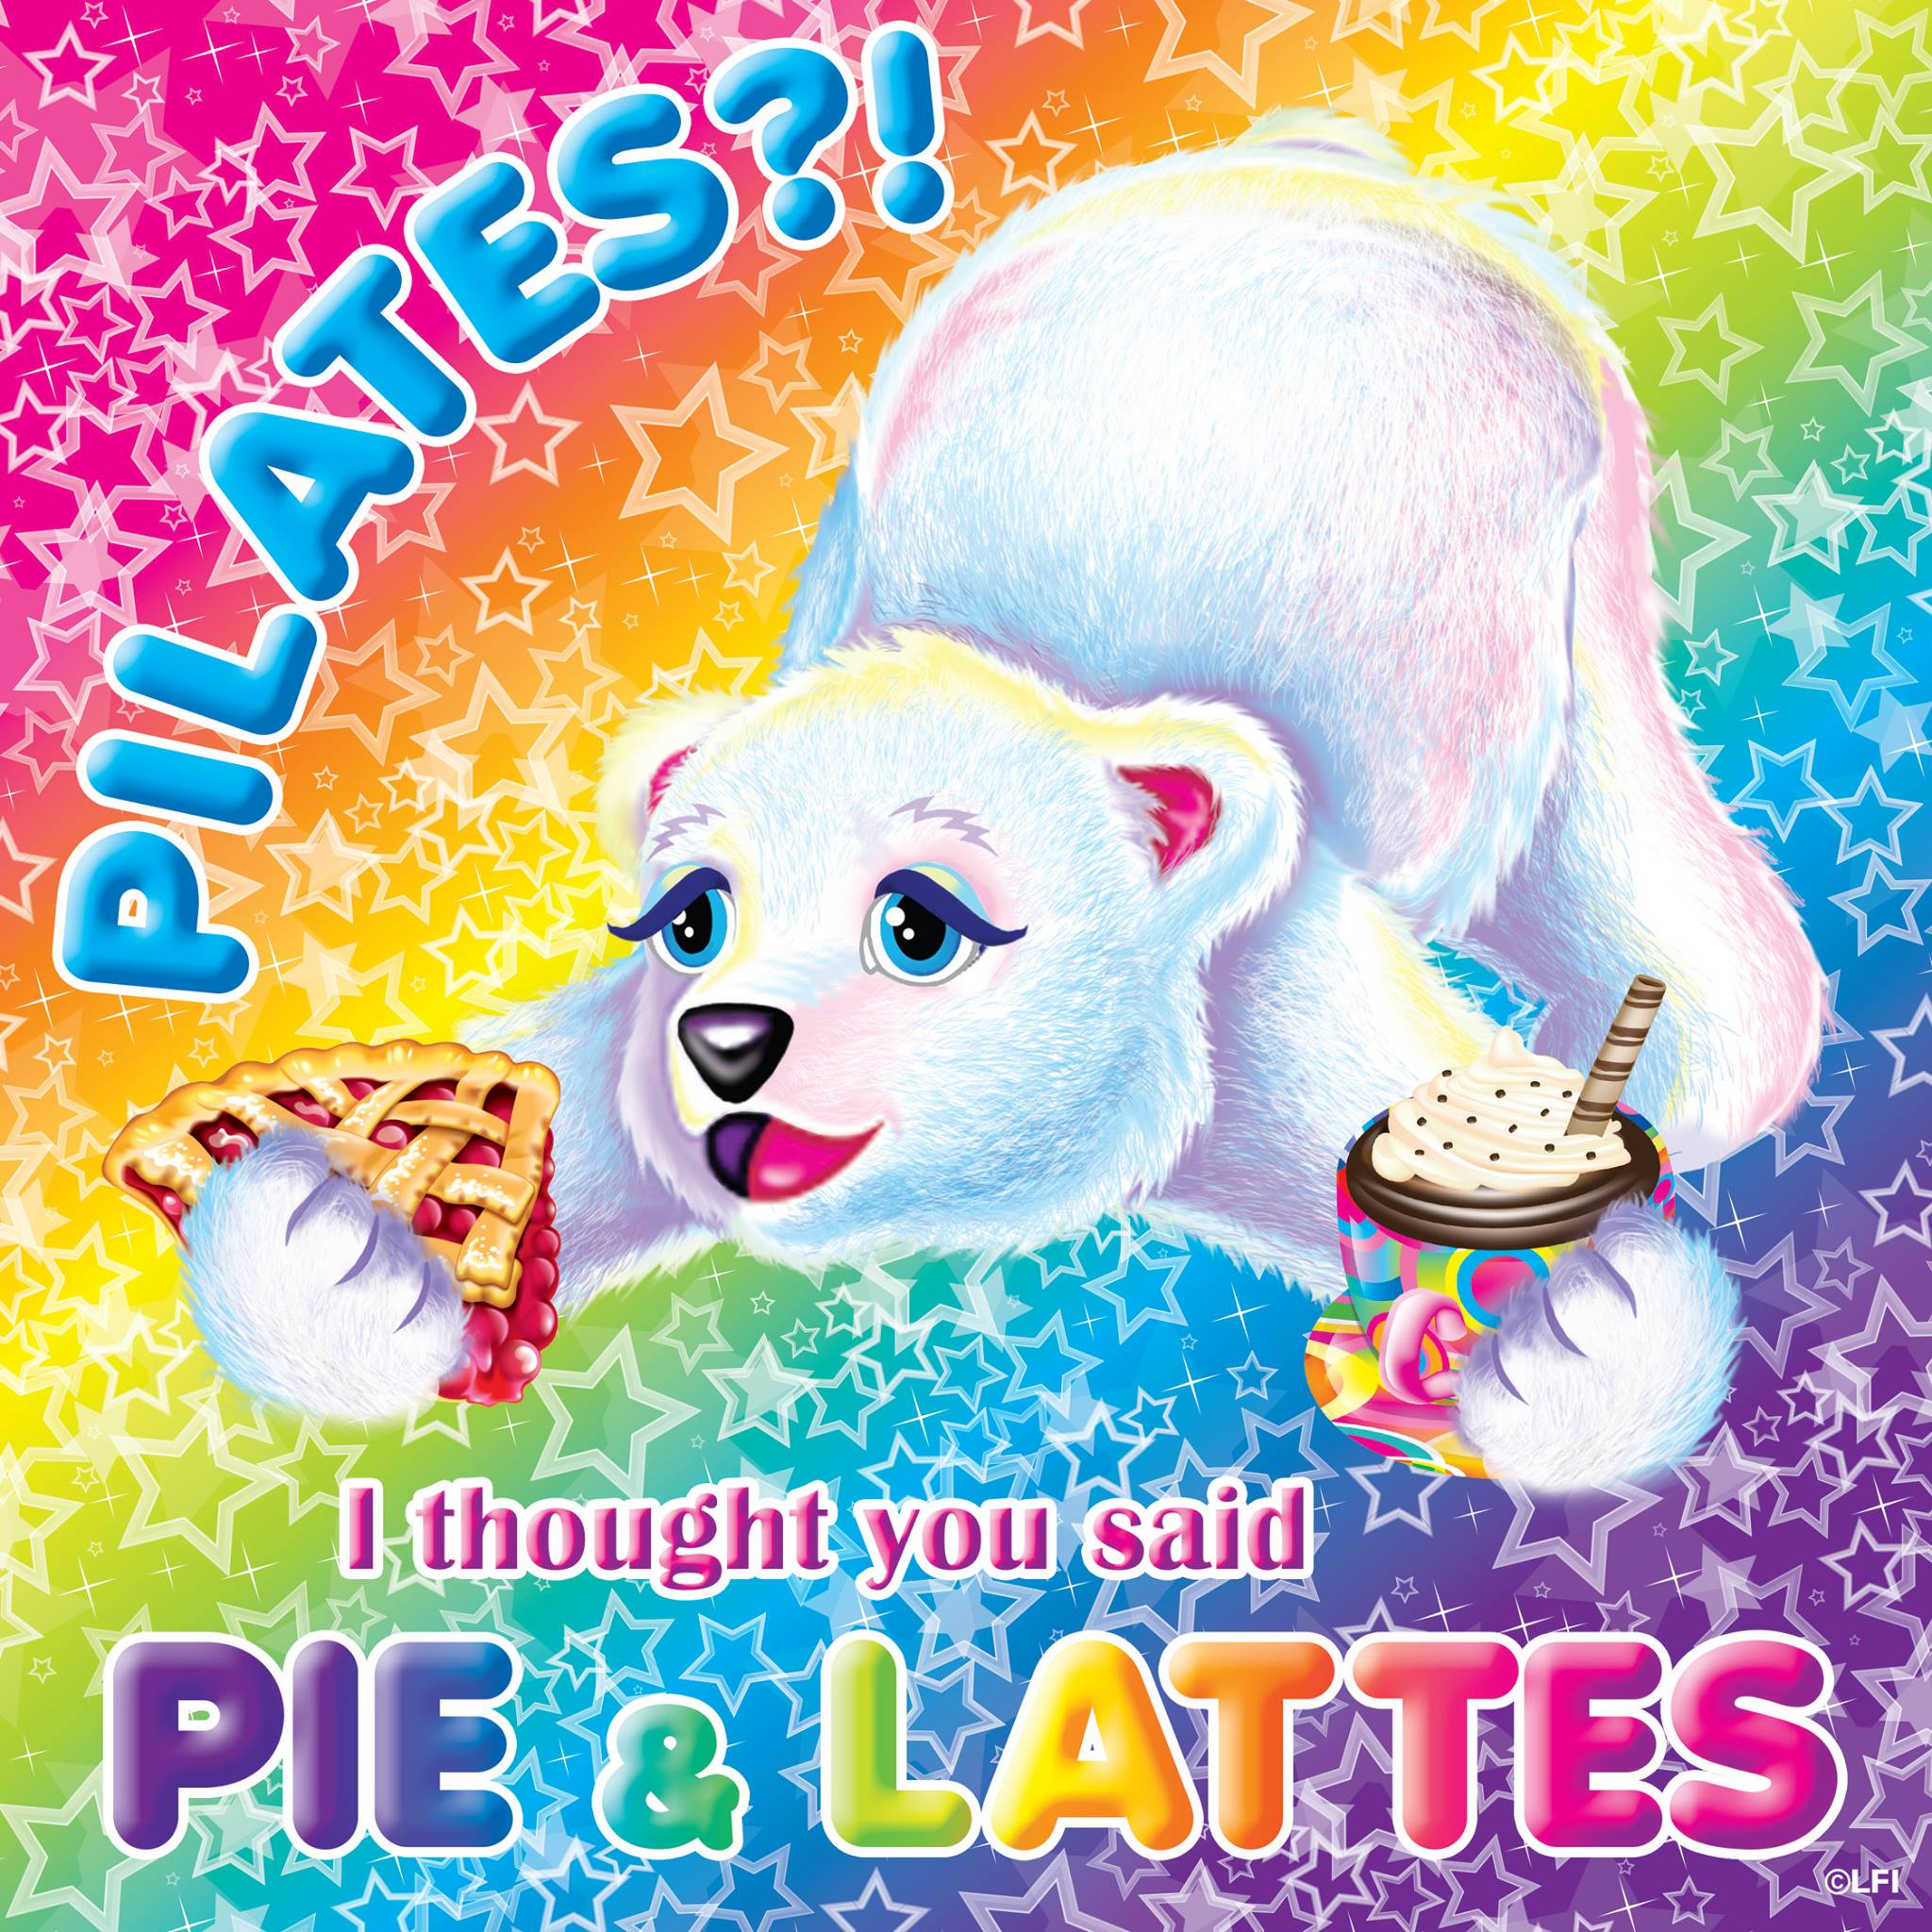 The Official Lisa Frank Facebook Page Is An Internet Safe Space For Aggressively Positive Memes